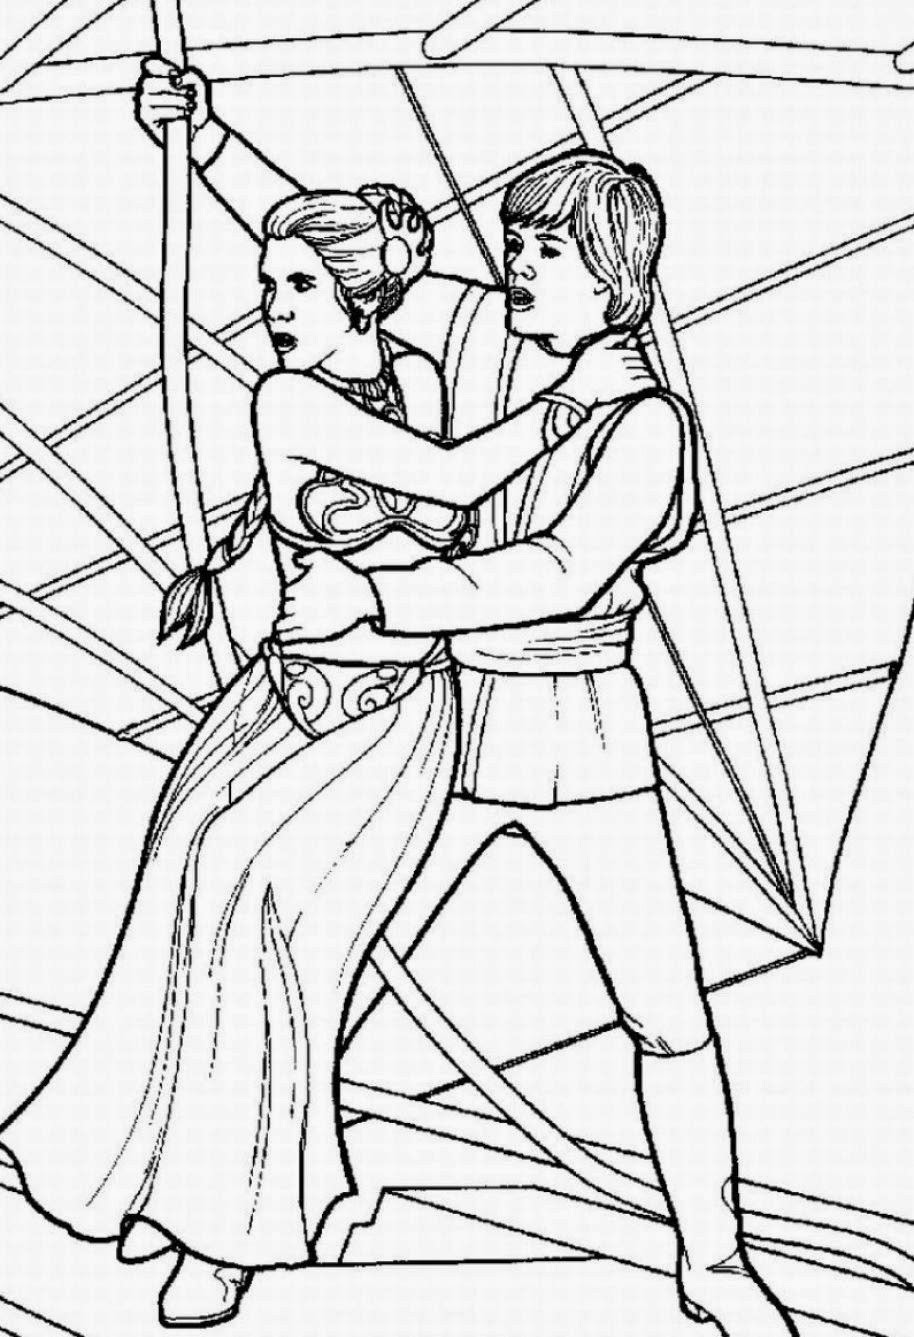 Star Wars Coloring Pages Printable  Coloring Pages Star Wars Free Printable Coloring Pages